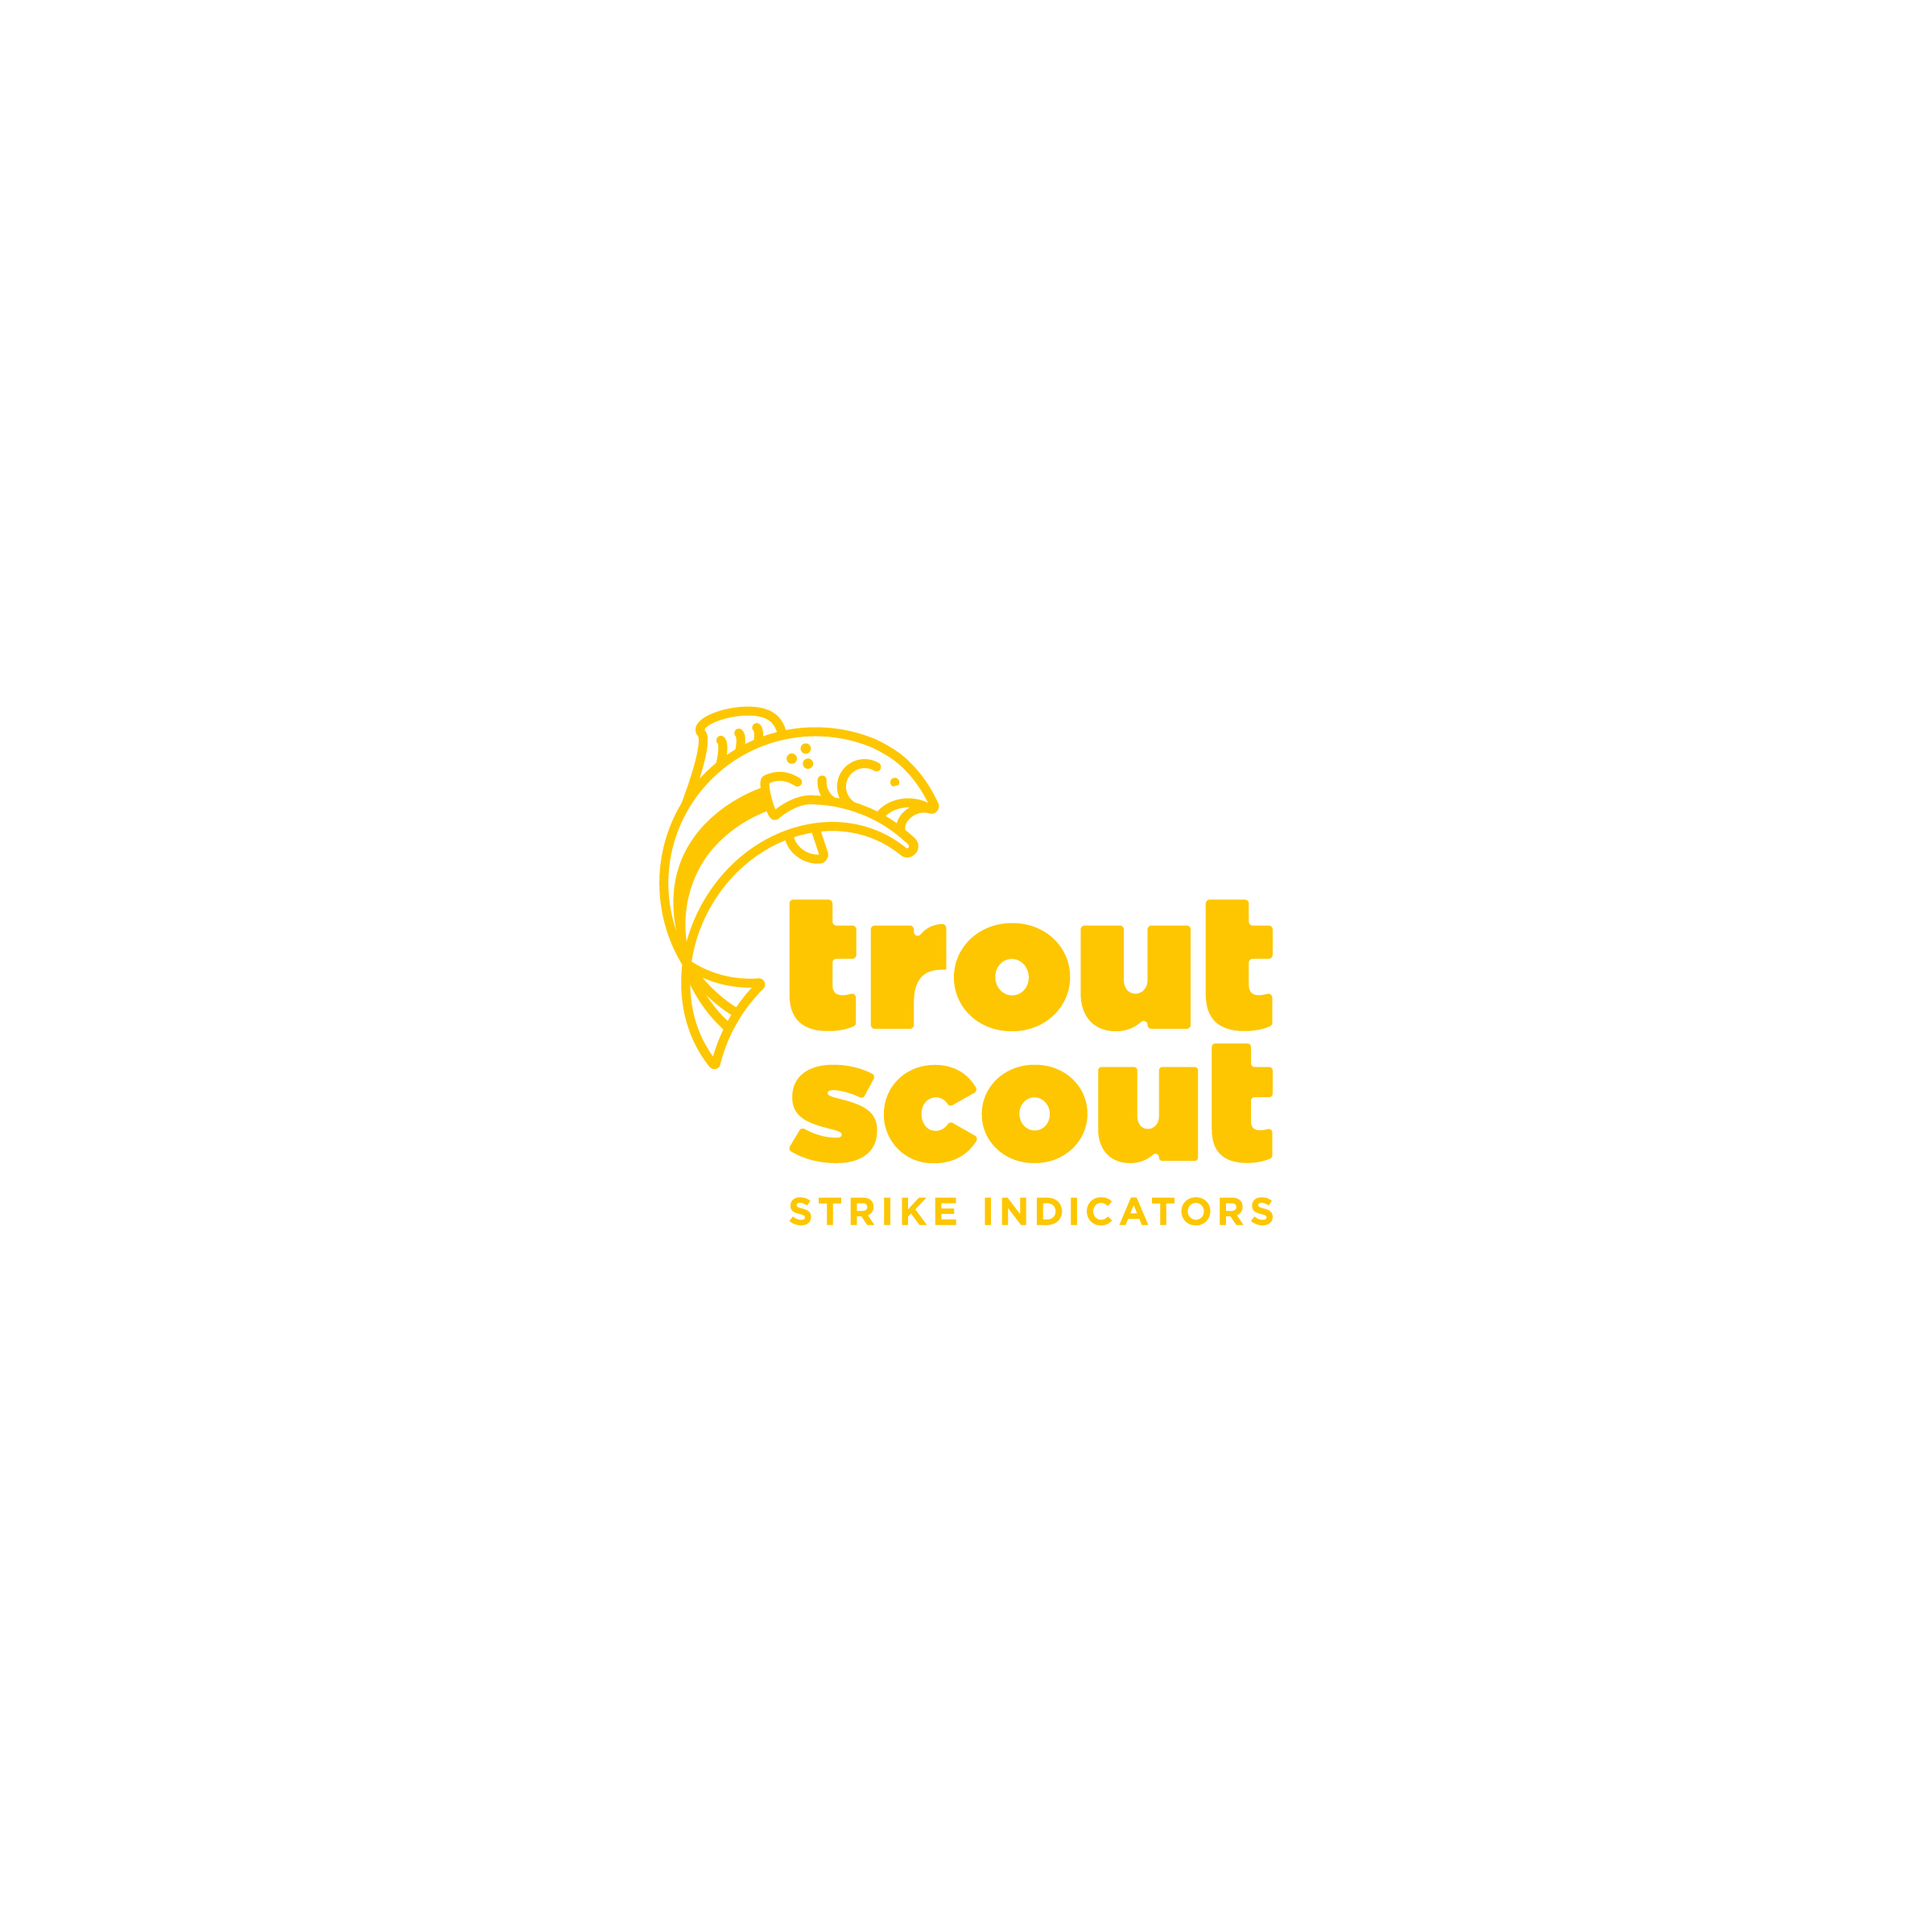 TroutScout_Yellow_Vrt.jpg